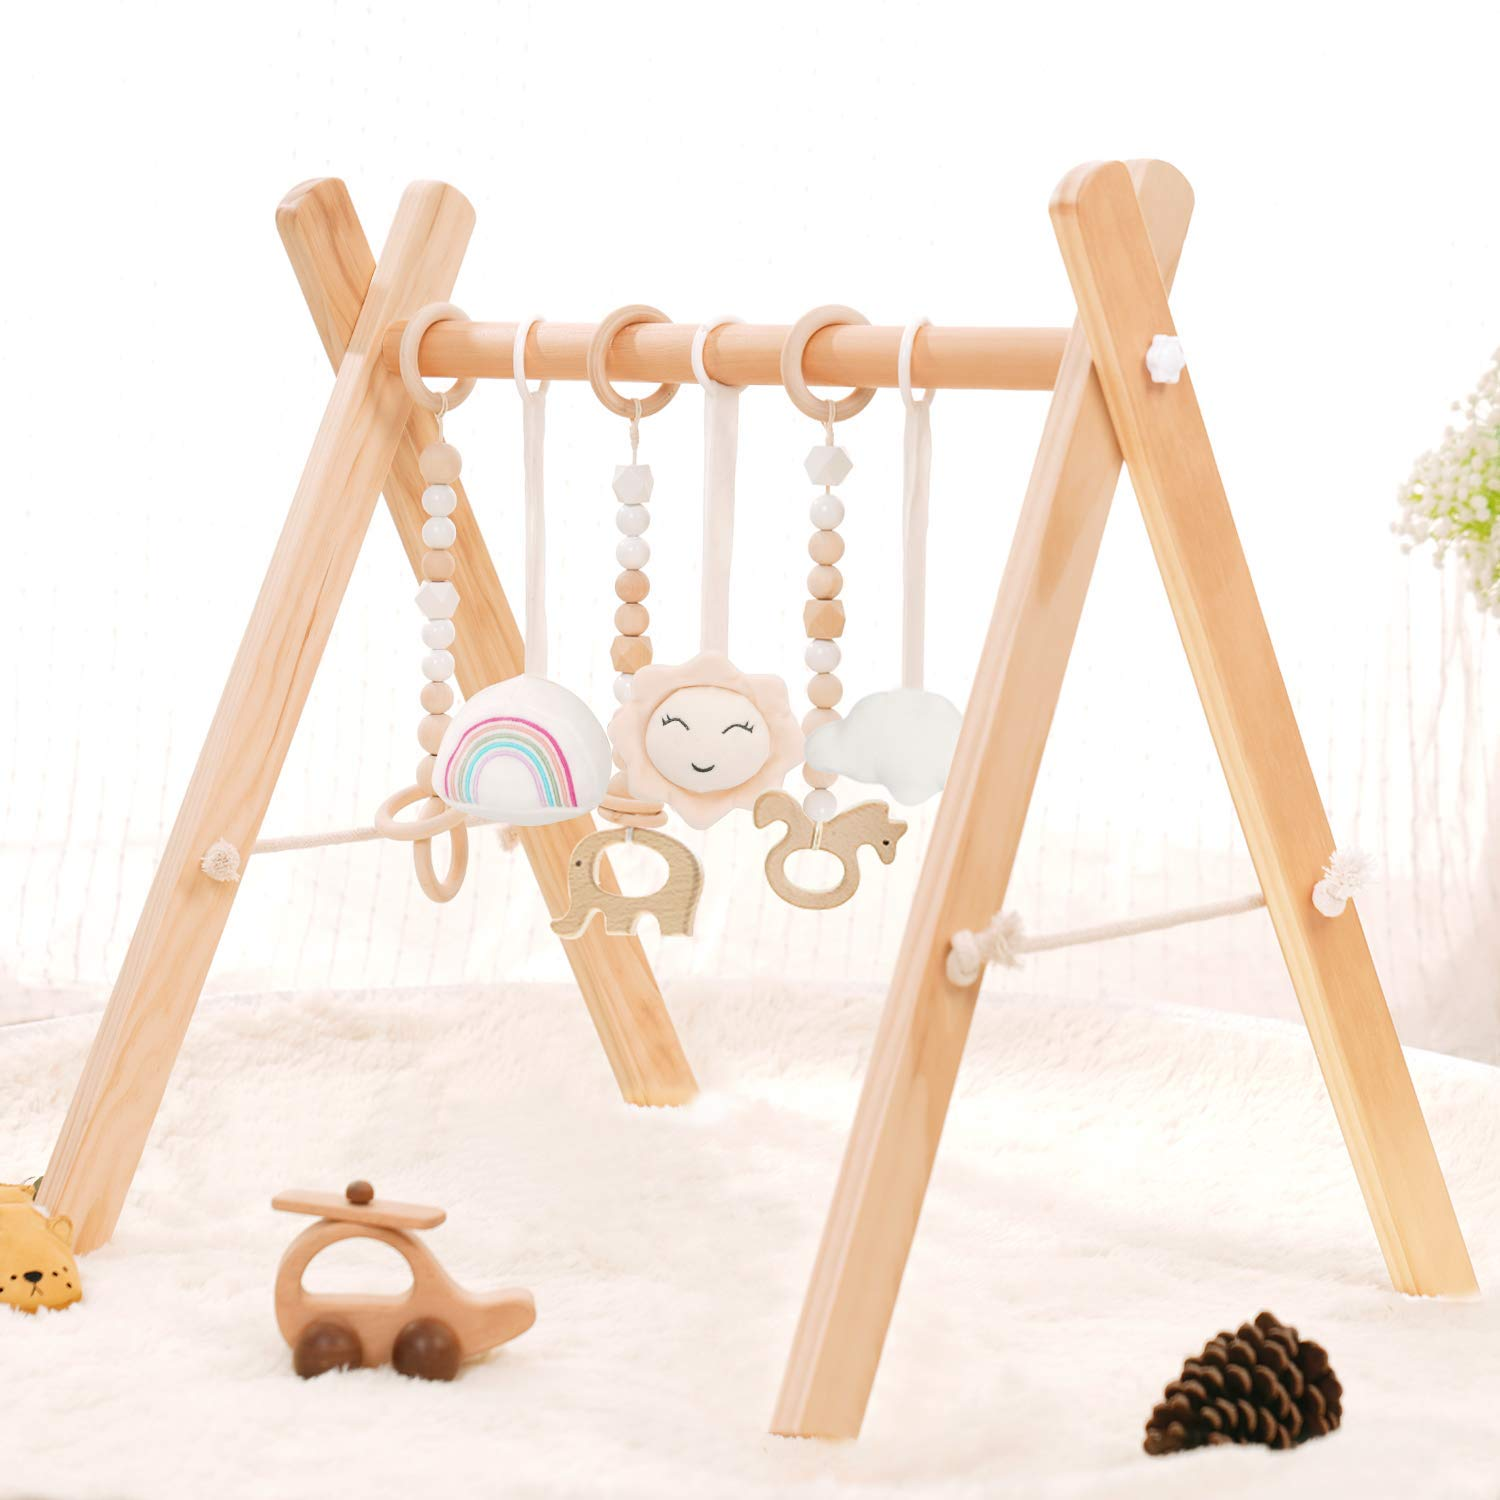 Wooden Baby Play Gym Wooden Gym Baby Gym with Hanging Toys Baby Activity Gym Wood